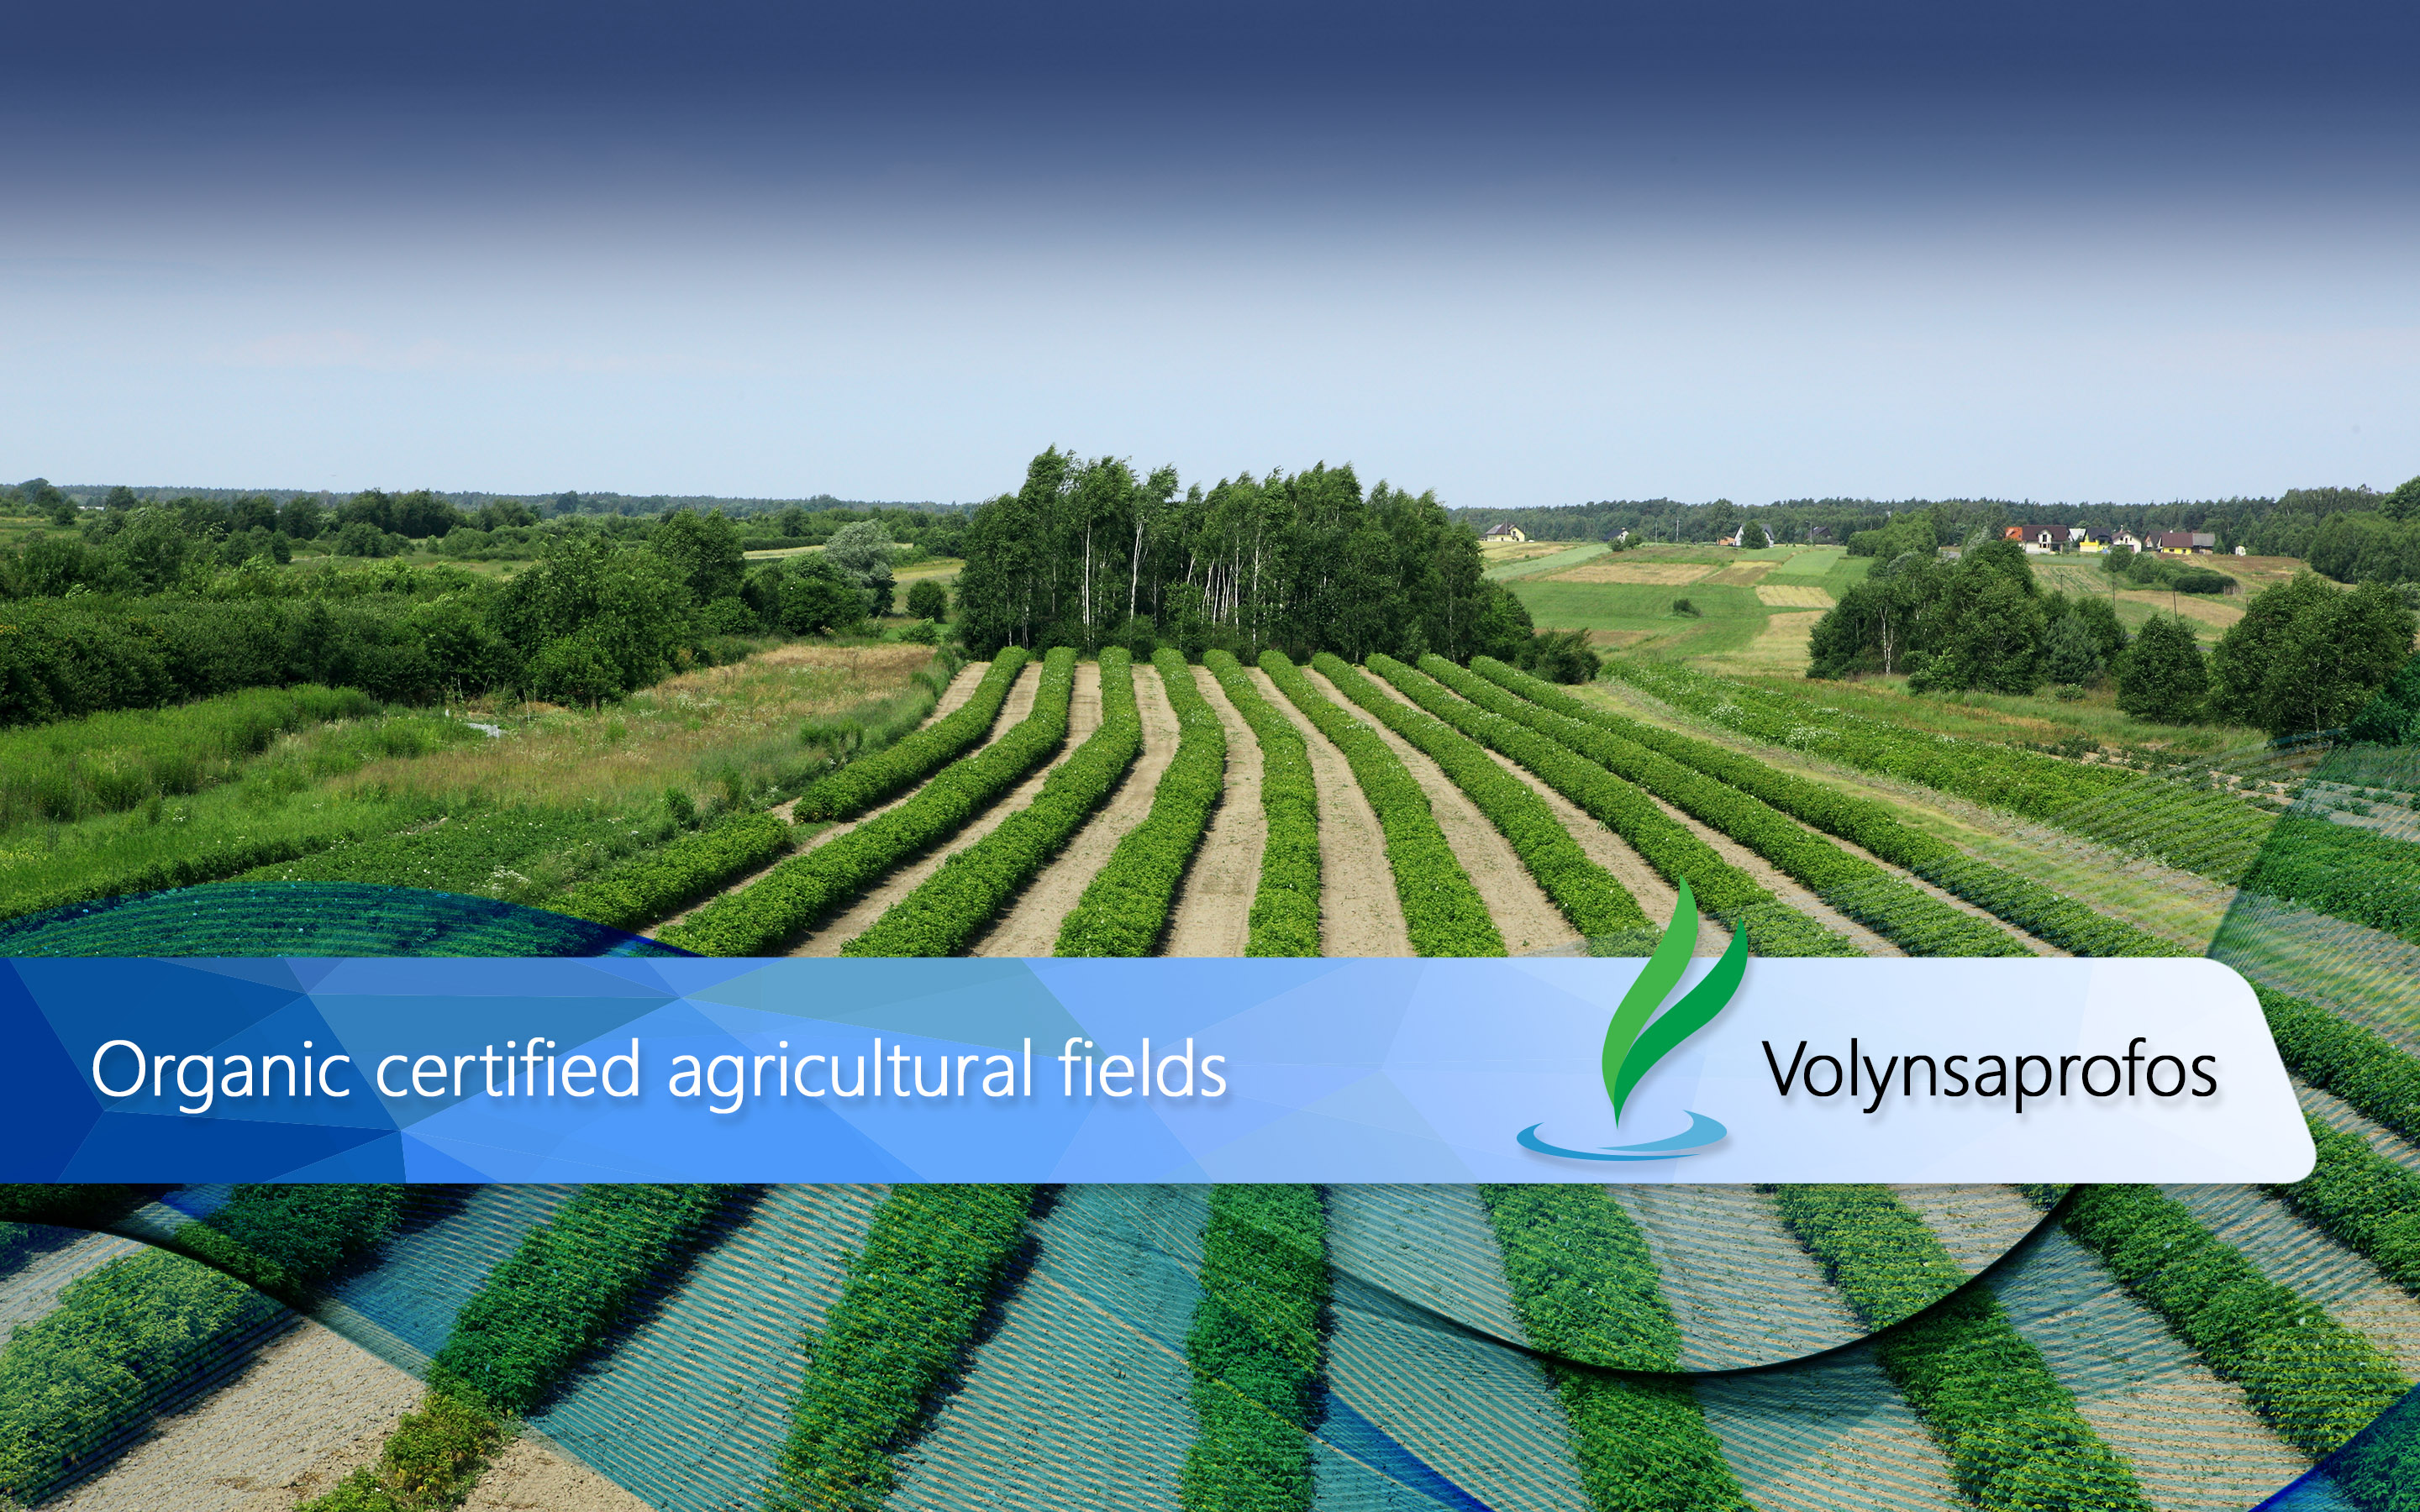 2-Organic-certified-agricultural-fields